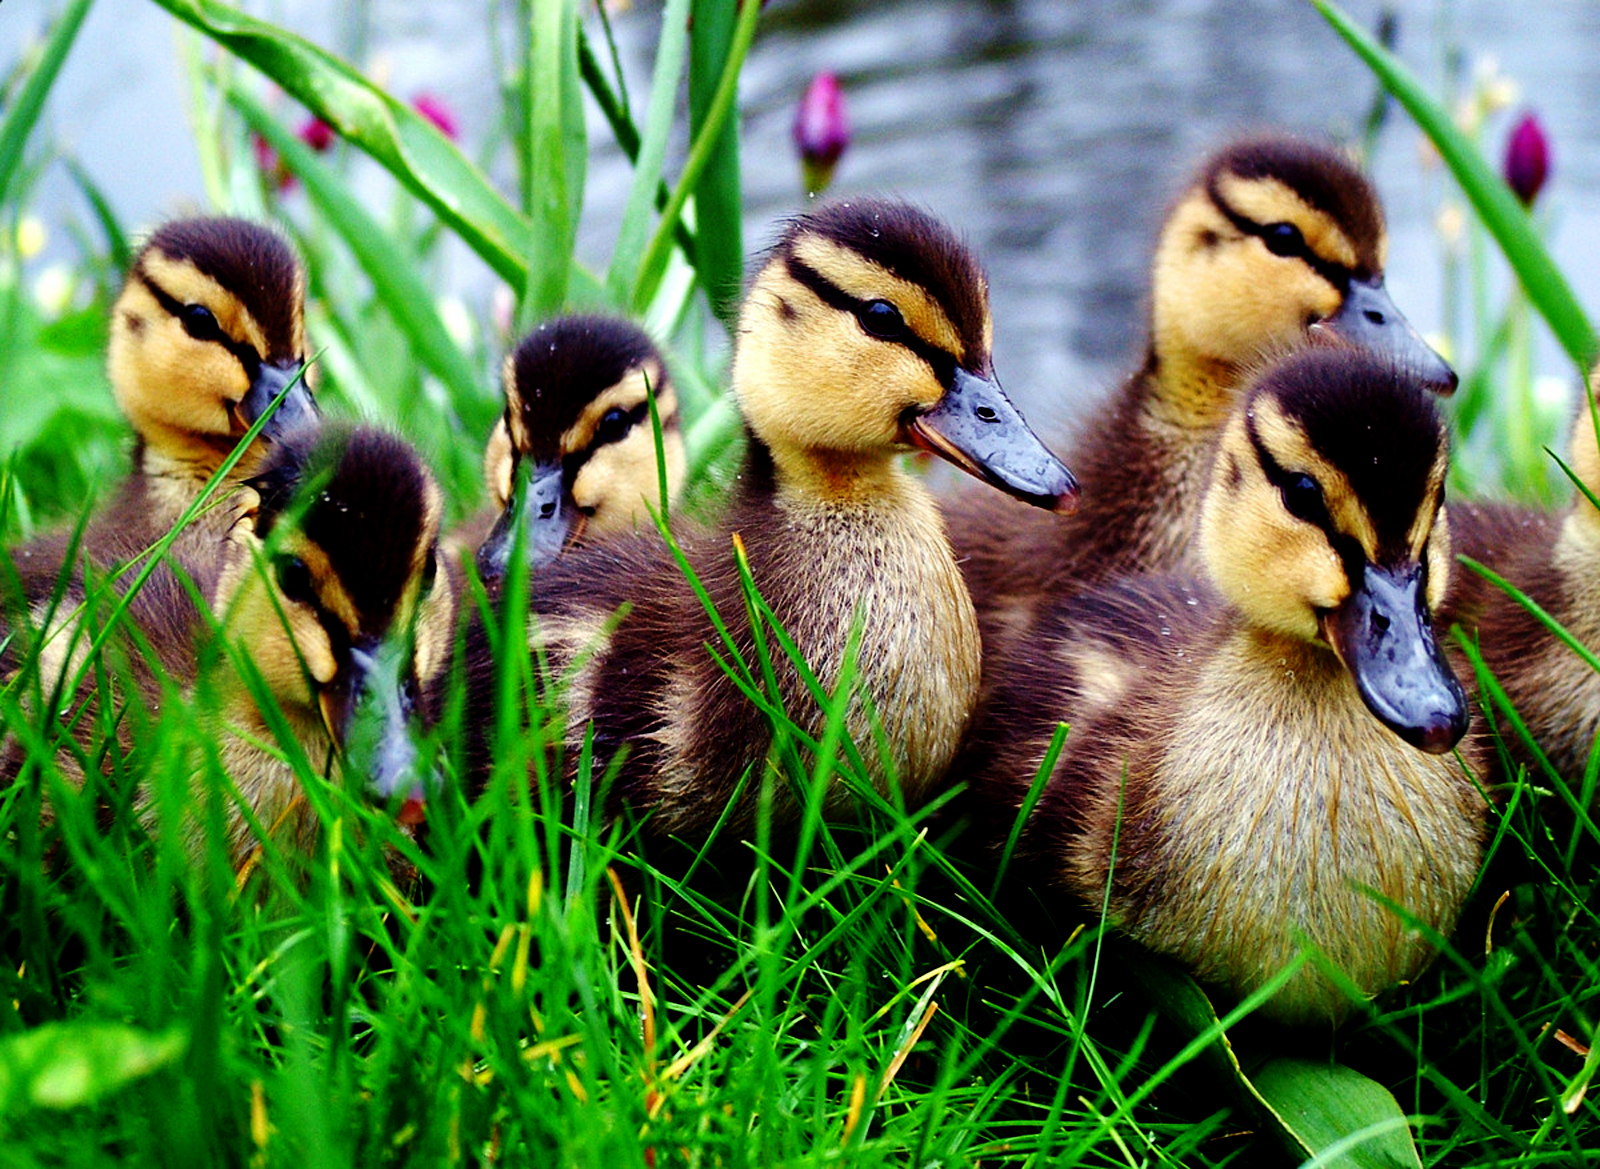 http://3.bp.blogspot.com/-vVte11jVZAI/TrAesJFgnLI/AAAAAAAAEIg/nGsKOIh3fhA/s1600/Cute_Little_Ducks_HD_Wallpaper_%252BVvallpaper.Net.jpg